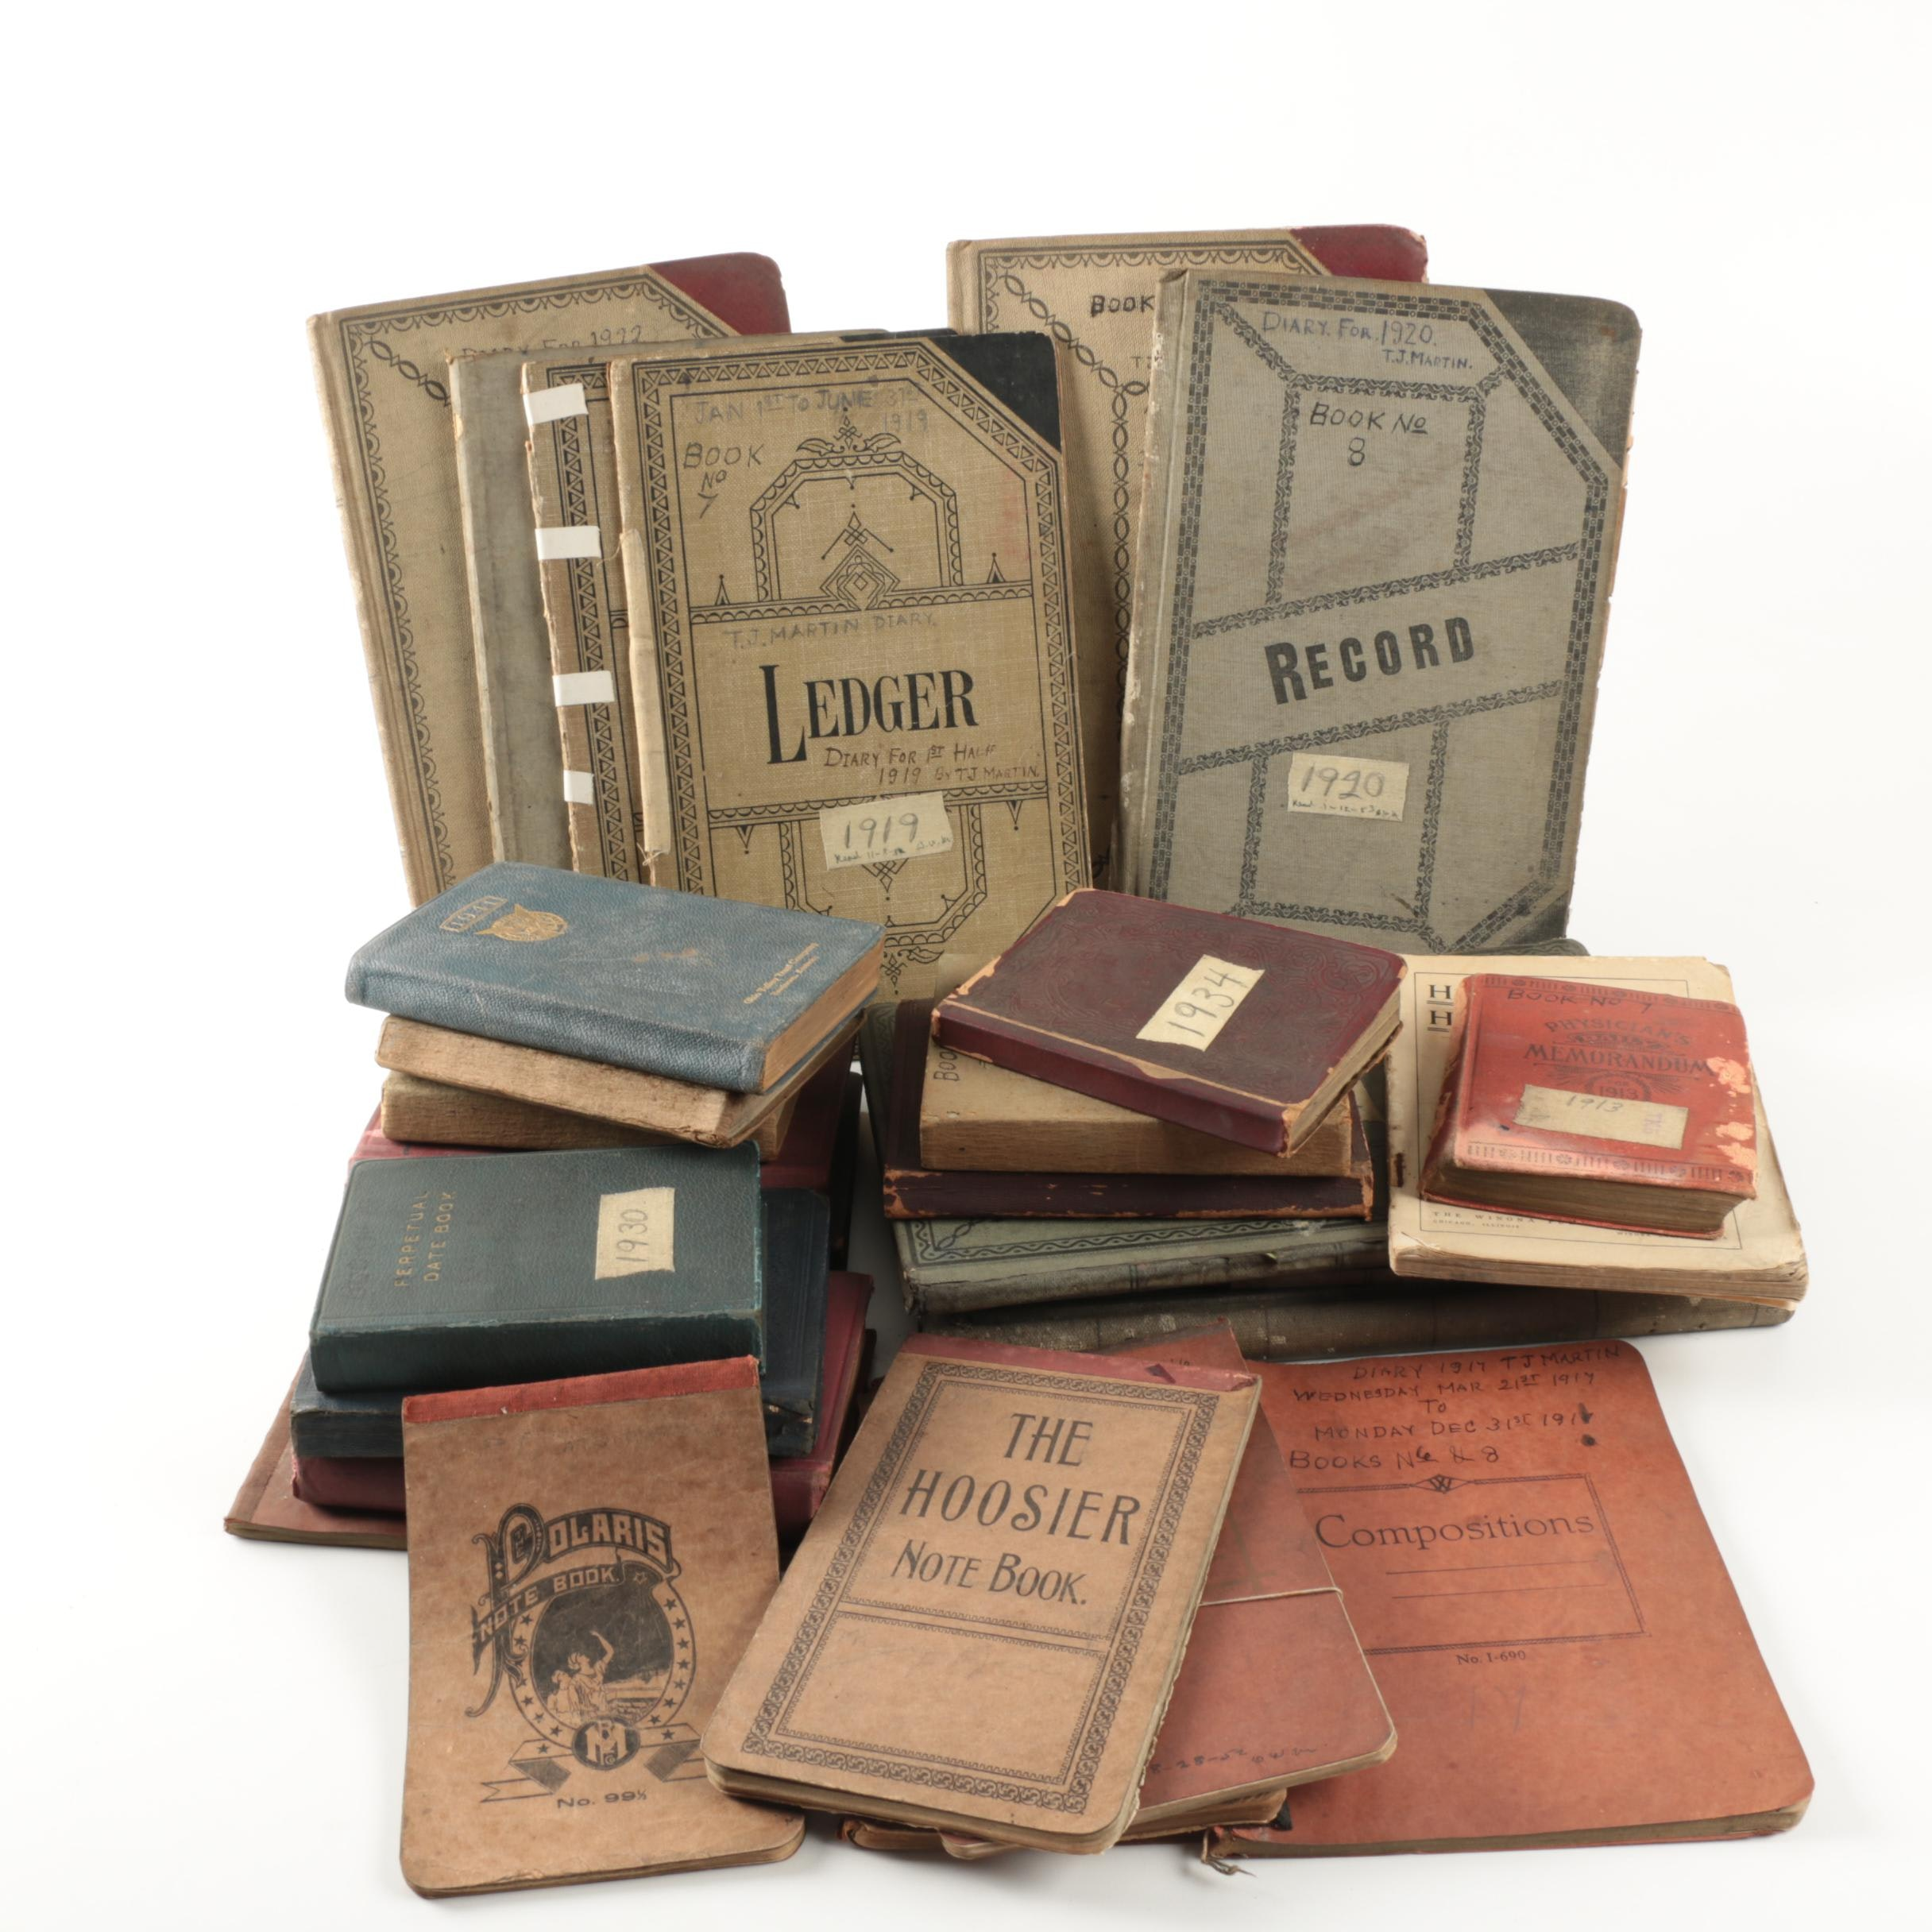 Early Twentieth Century Personal Diaries and Ledgers